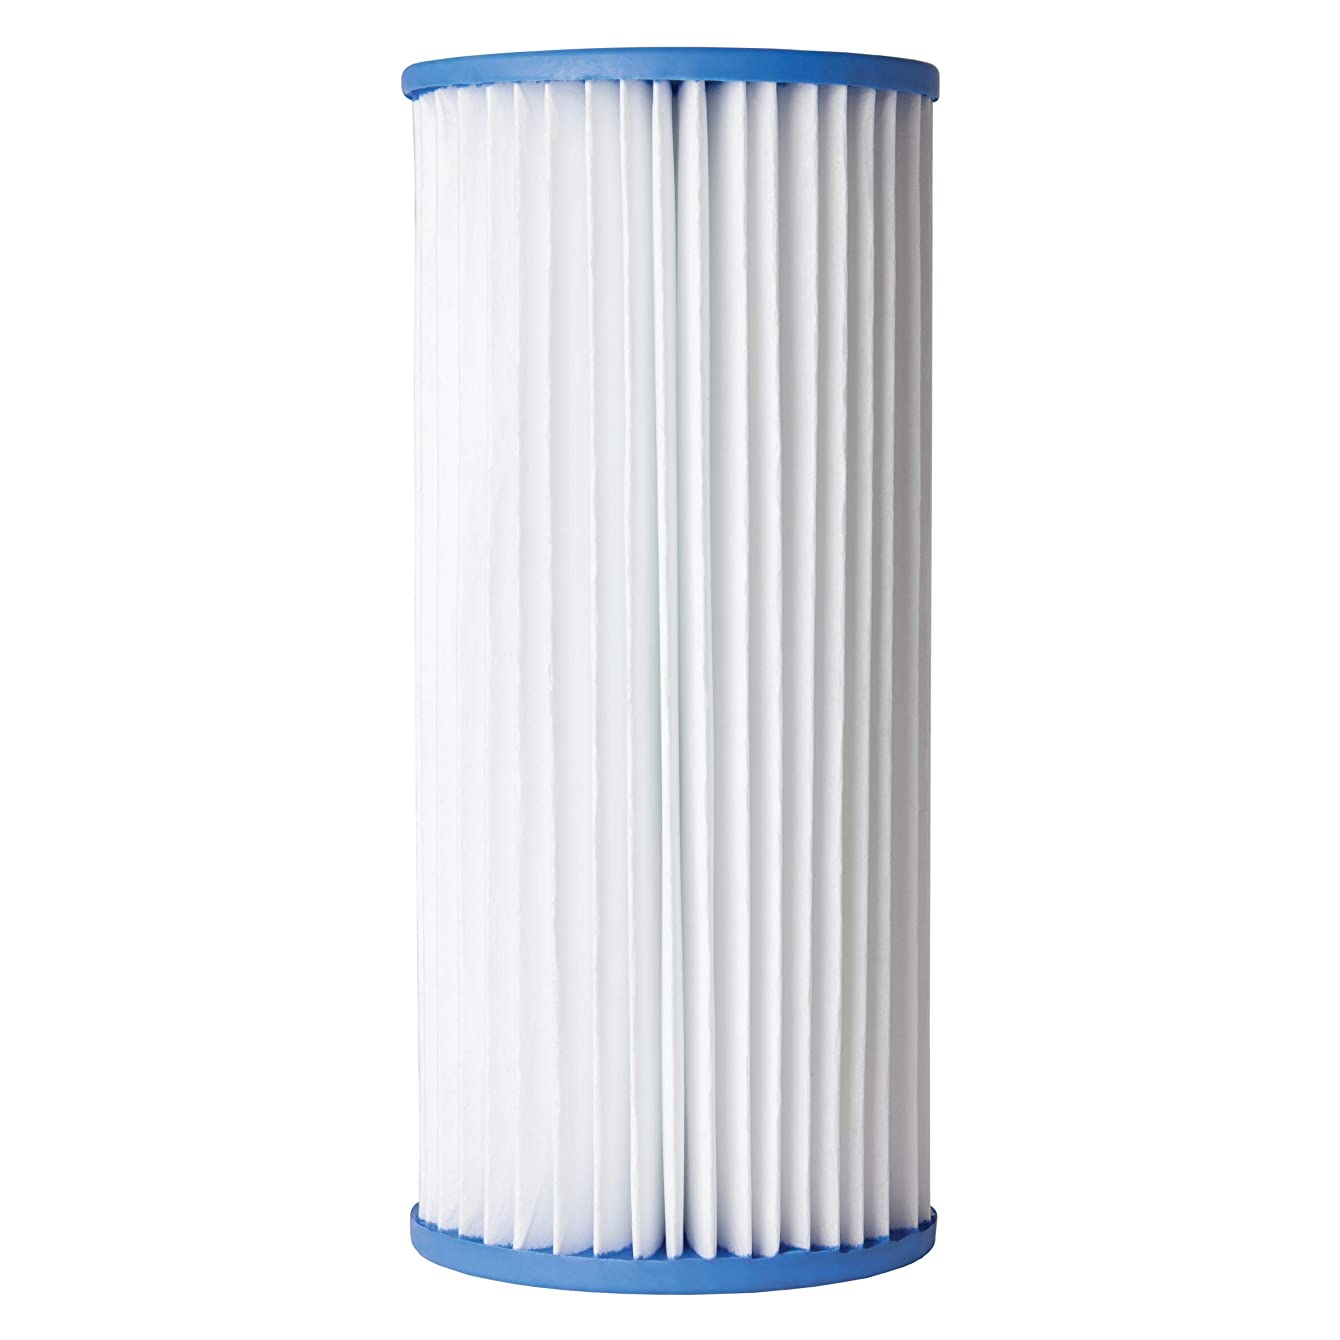 AO Smith AO-WH-PREL-RPP - Sediment Filter Replacement 4.5 Inch - 40 Micron Filtration